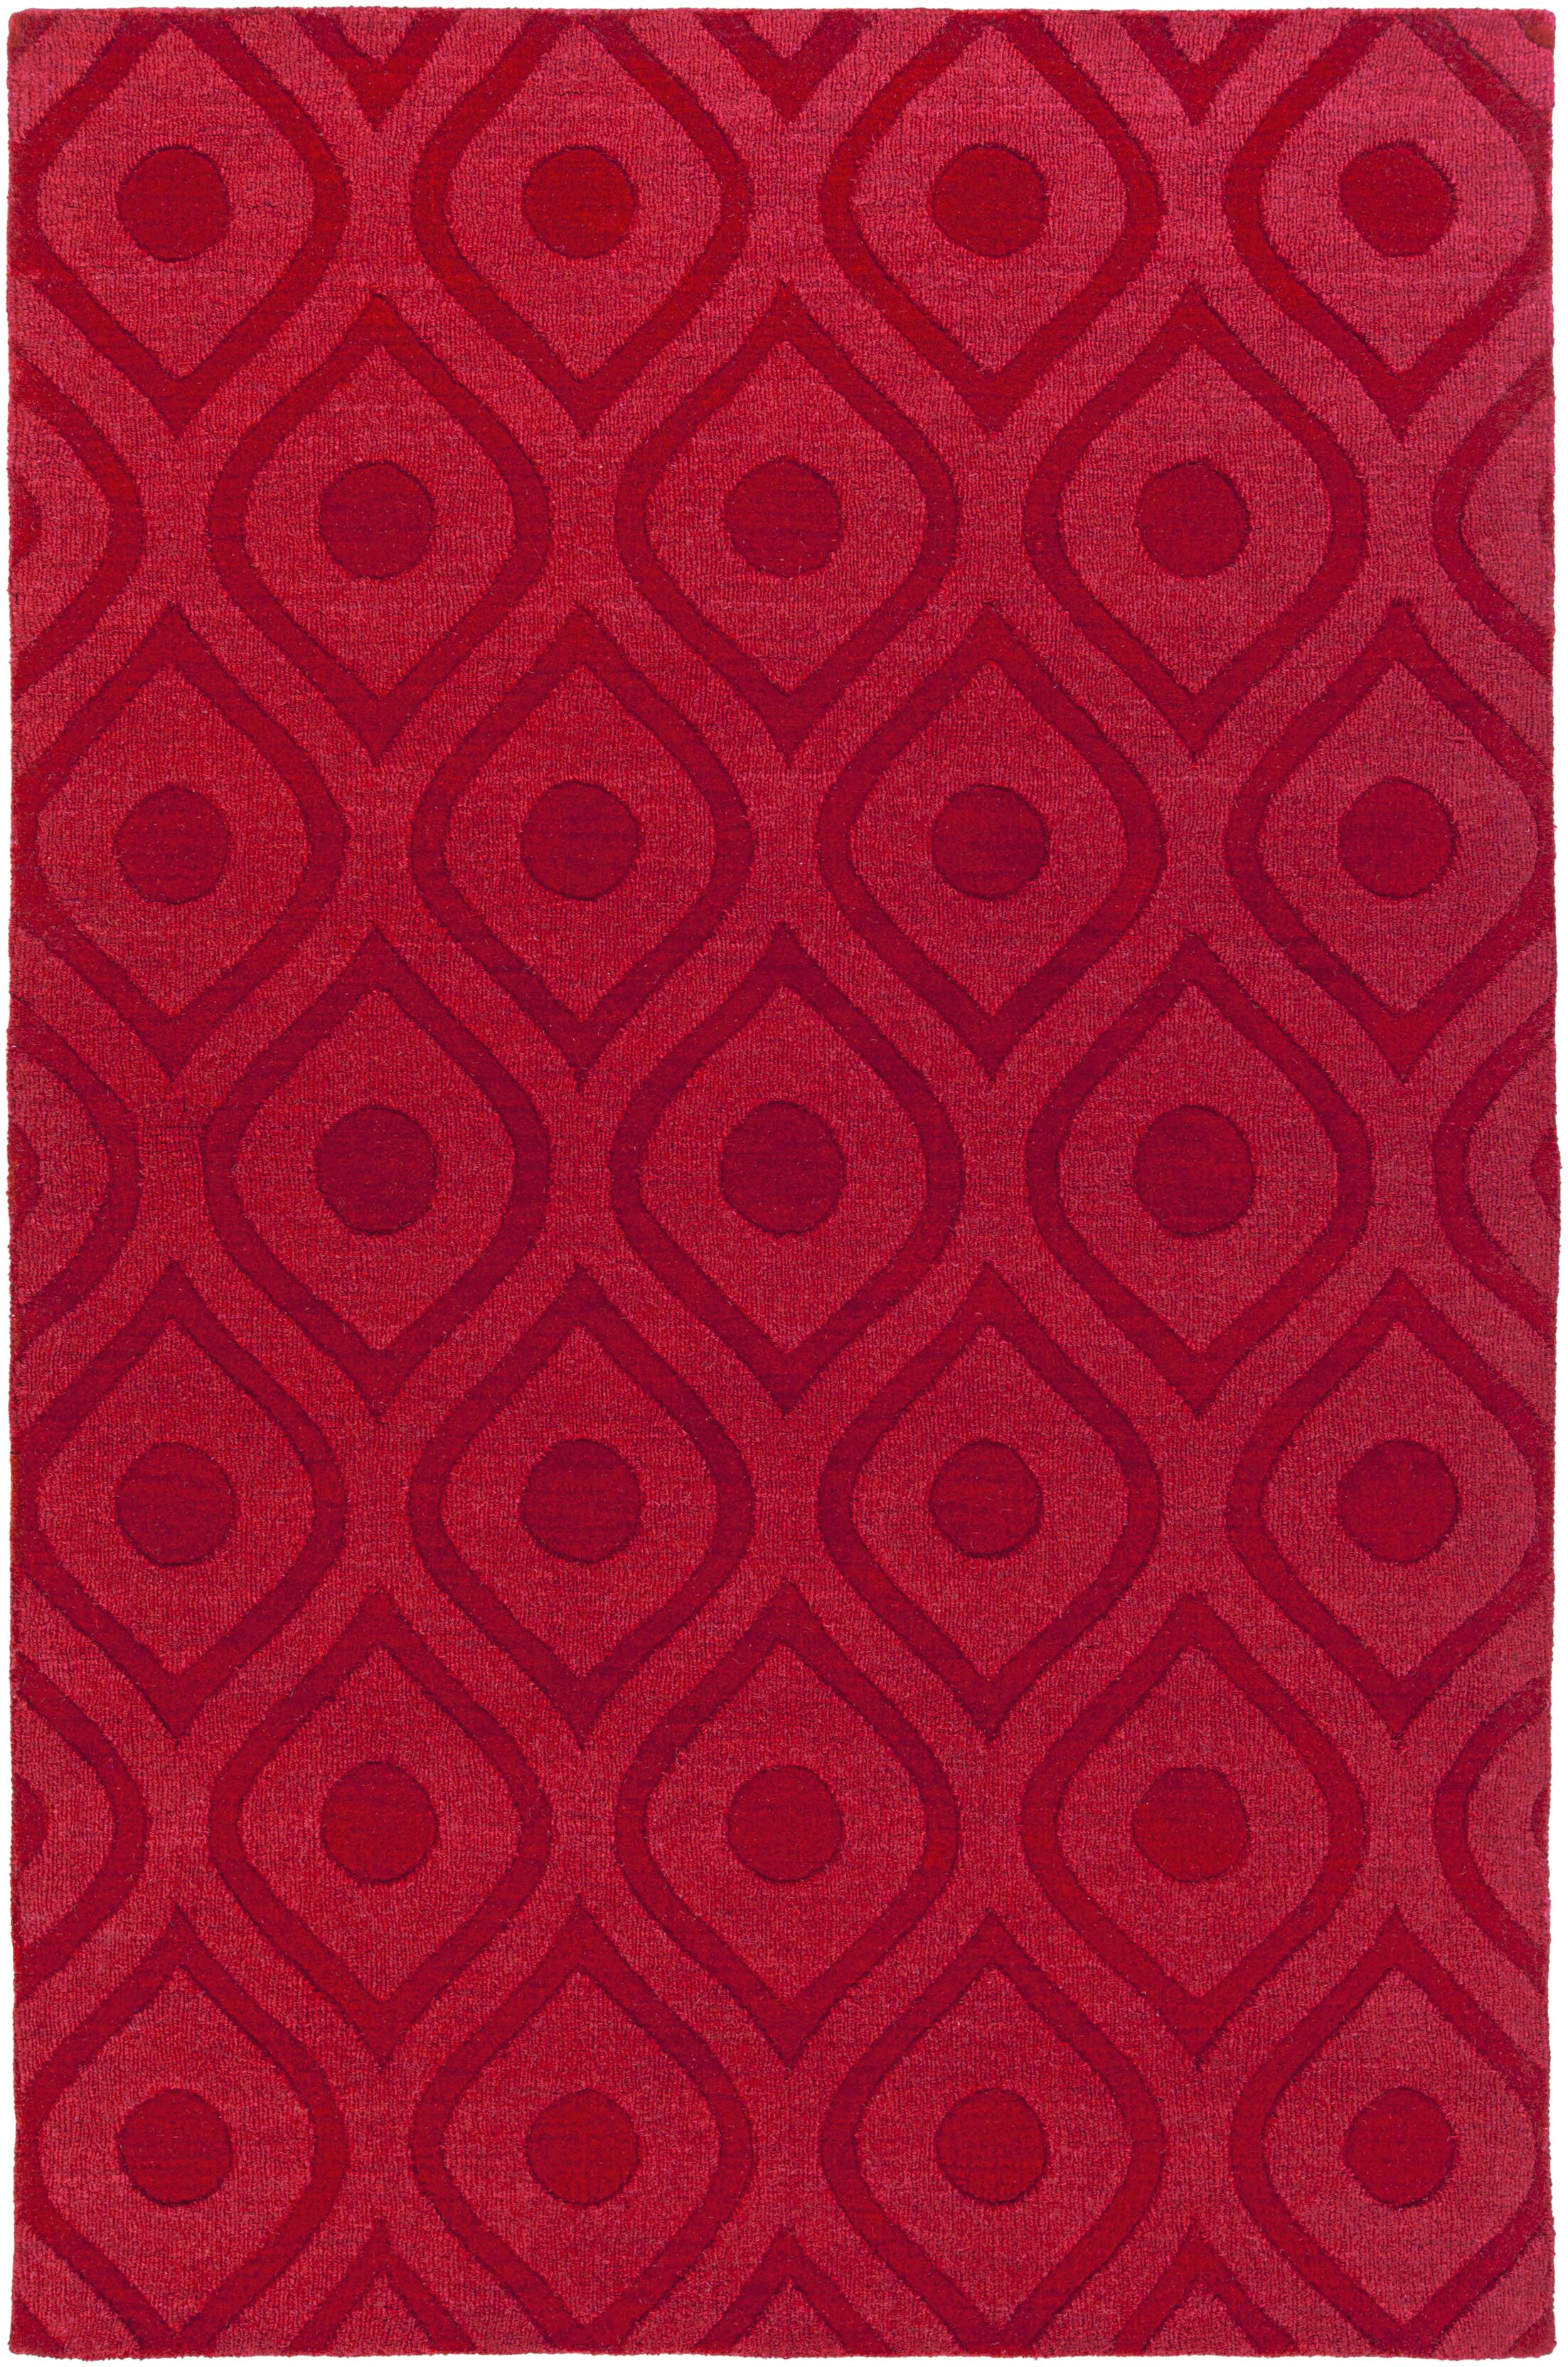 Castro Hand Woven Wool Red Area Rug Rug Size: Rectangle 4' x 6'